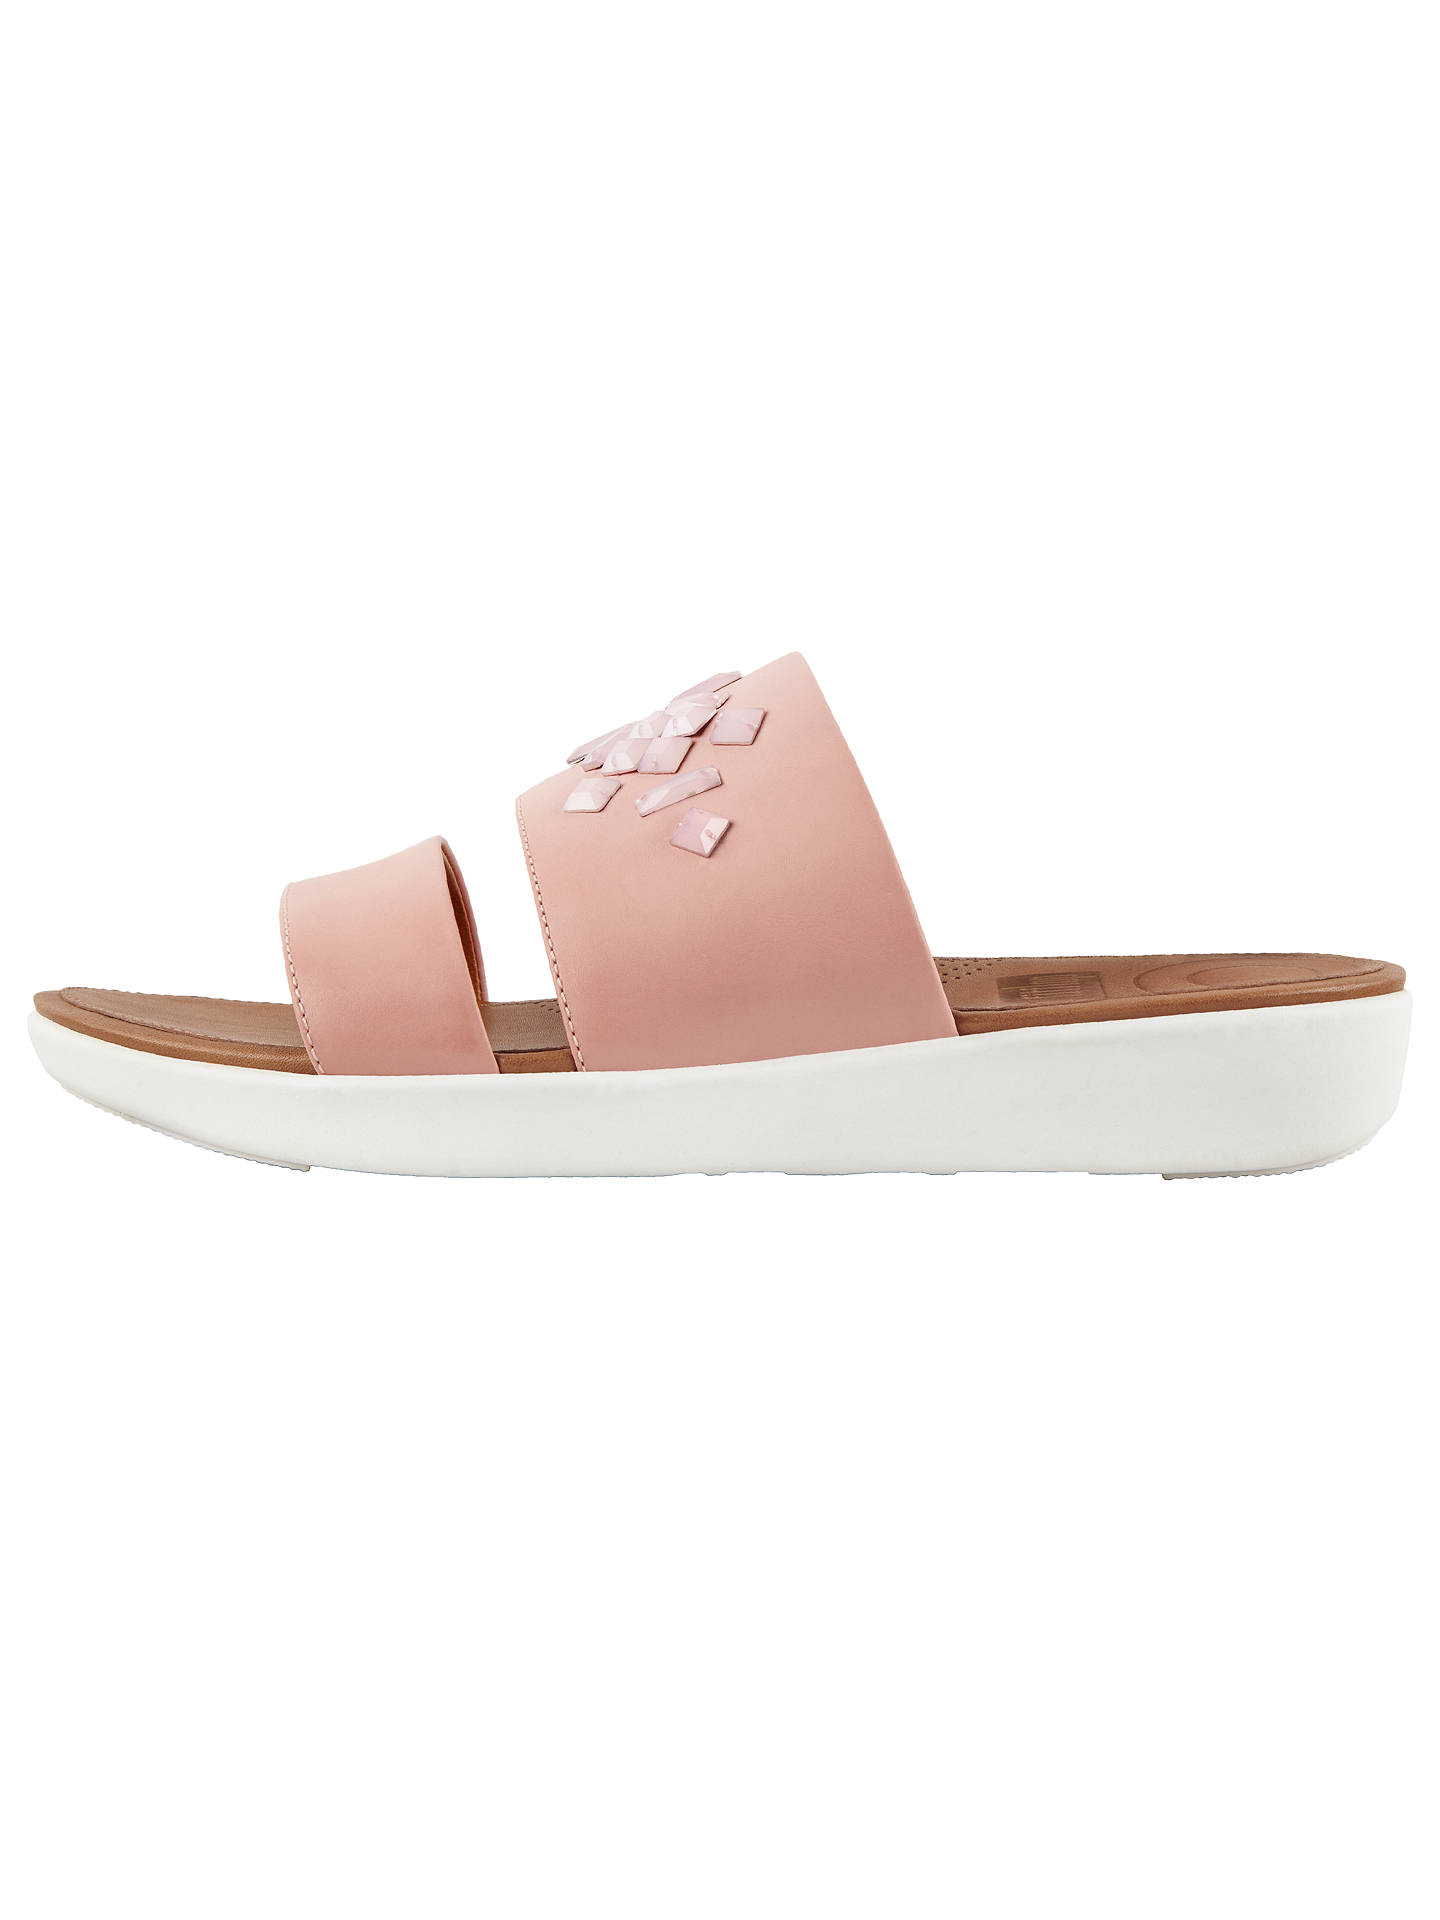 baeff2b28 FitFlop Delta Slider Sandals at John Lewis   Partners